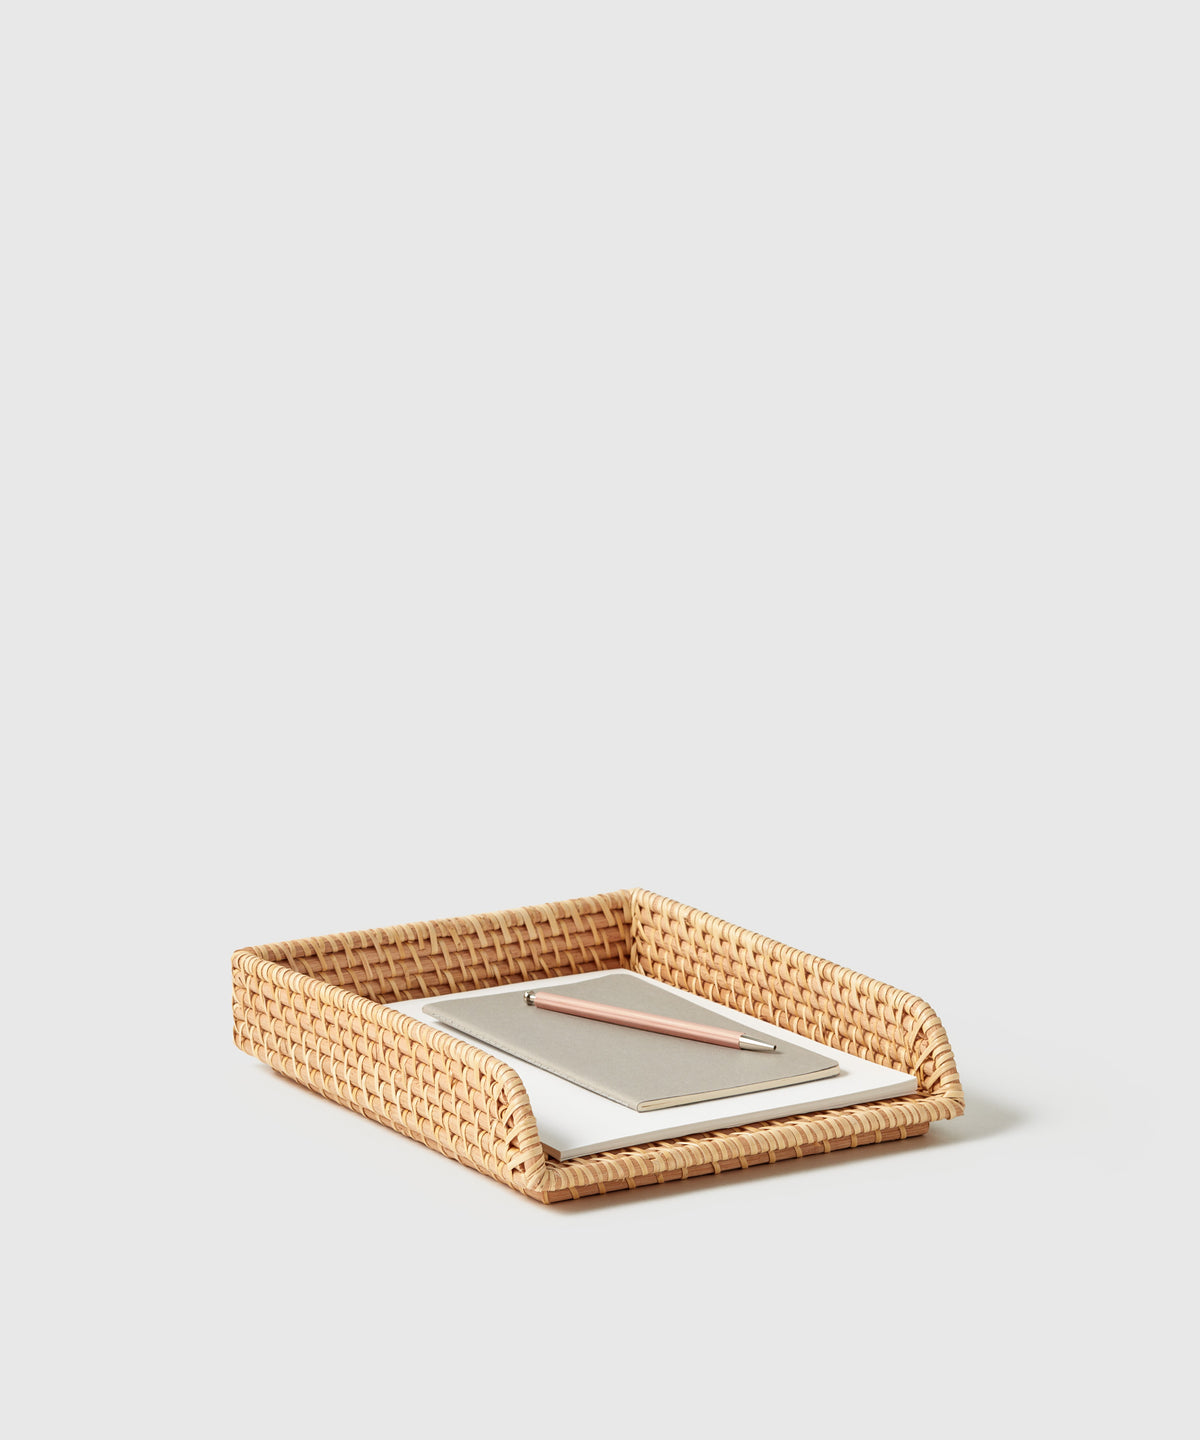 Woven Rattan Stackable Letter Tray